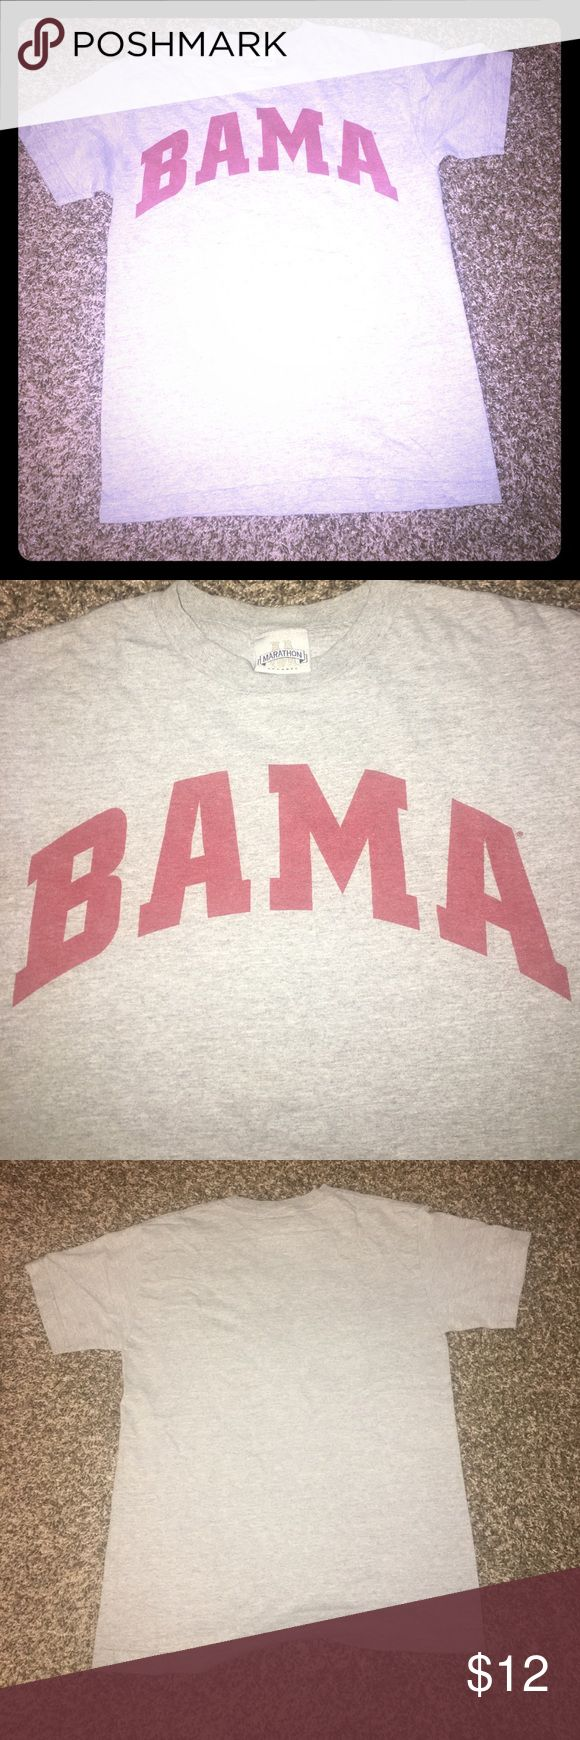 """Alabama Crimson Tide """"Bama"""" T-shirt small not worn Roll tide!!! Classic game day shirt found in my old college stuff.  Was vaccine sealed and I had so many I never wore it. It still has the original fold lines in it. Very slim-  great girlfriend T marathon apparel  Shirts Tees - Short Sleeve"""